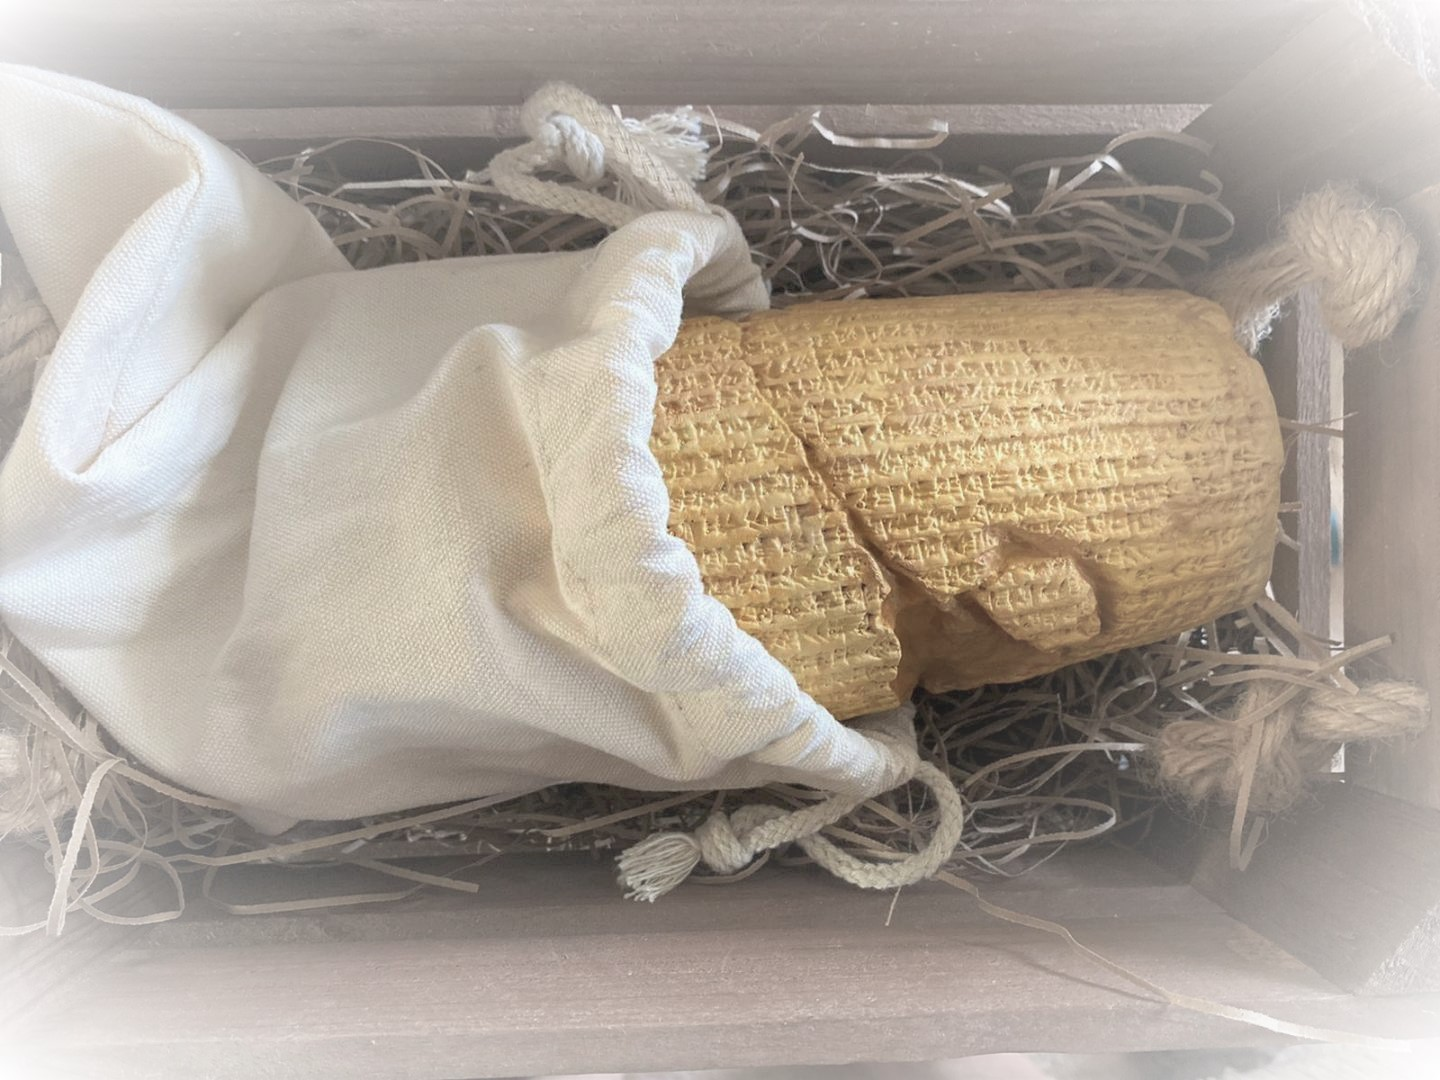 The Cyrus Cylinder Replica